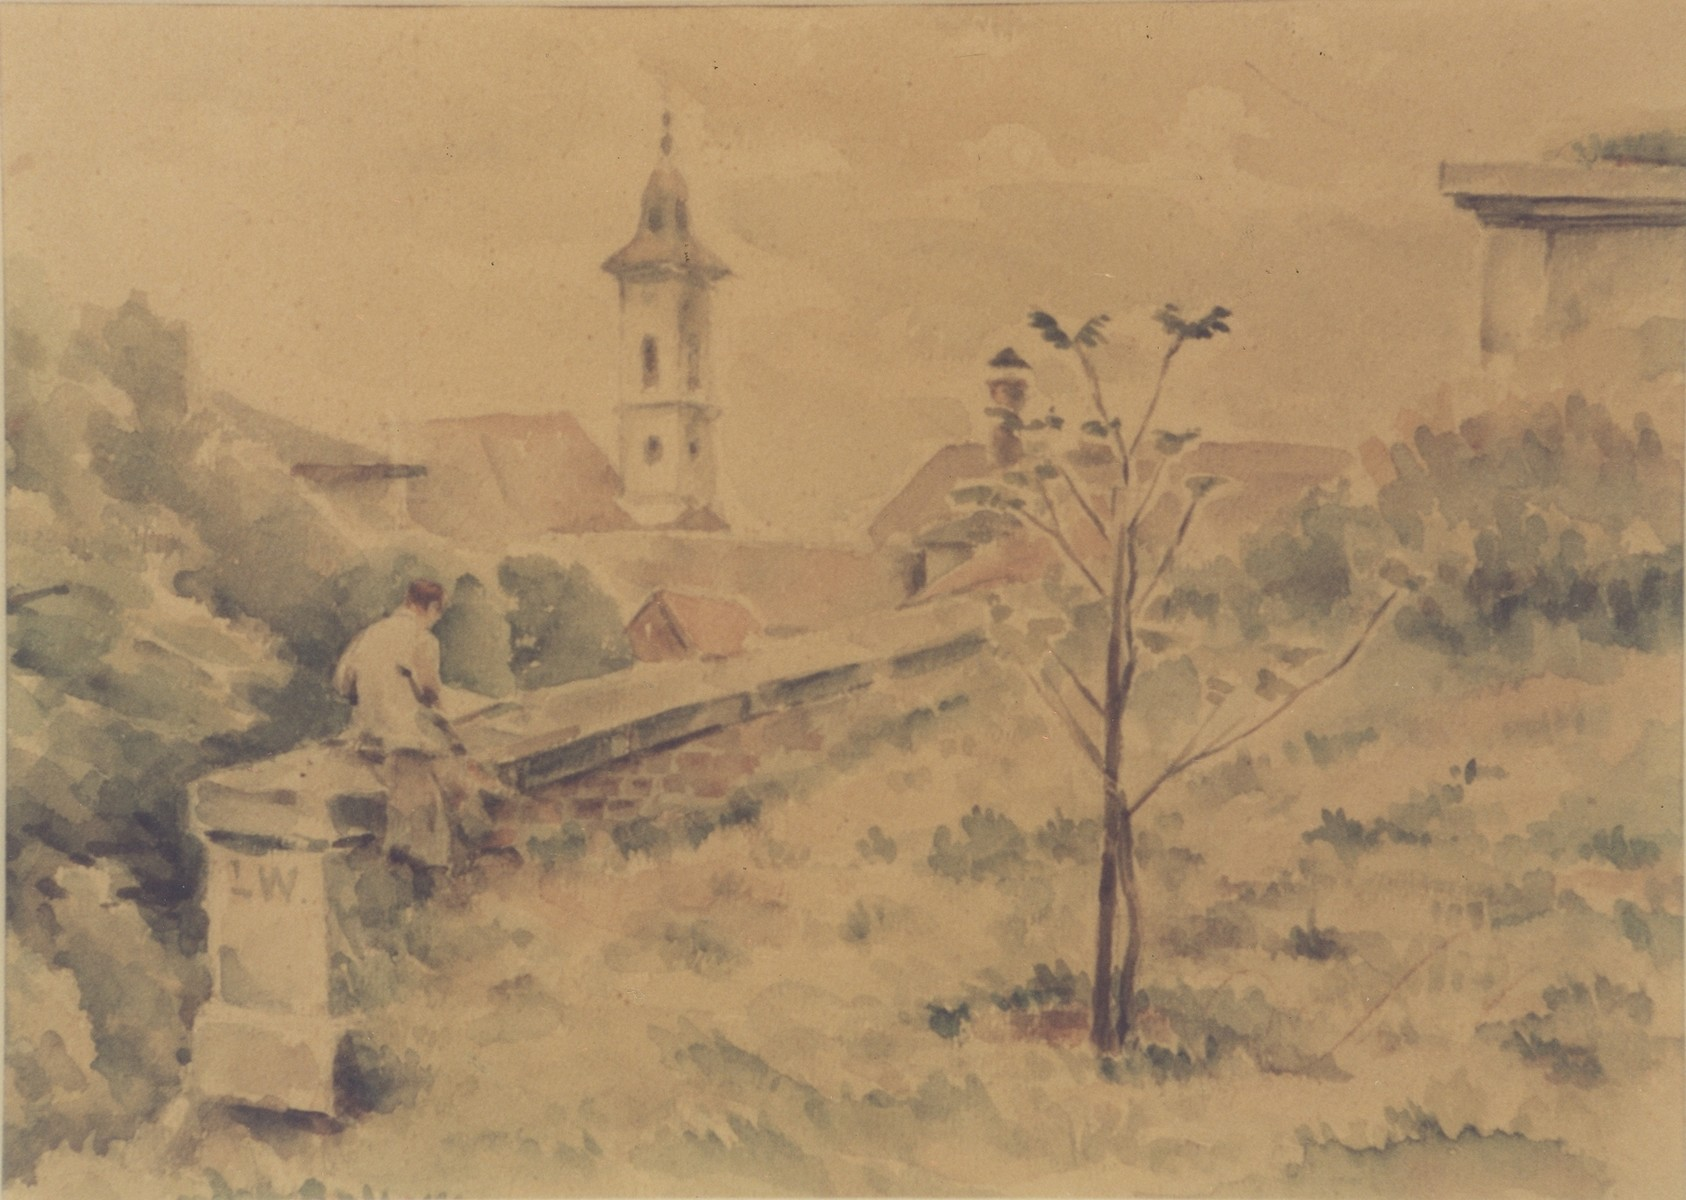 Watercolor landscape of Theresienstadt painted by Otto Samisch.